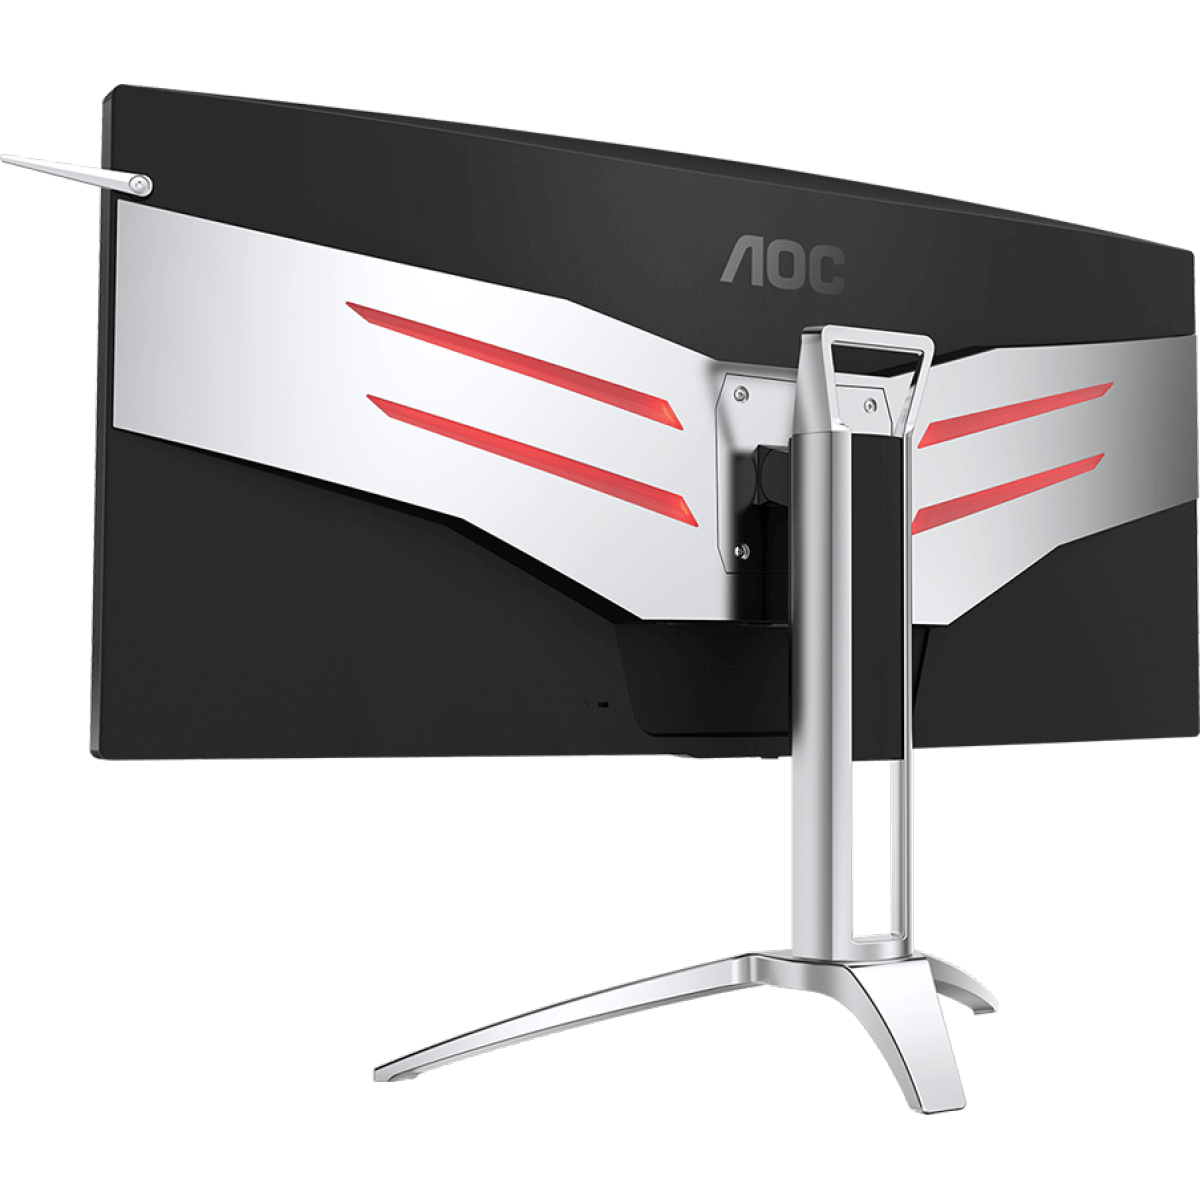 Monitor Gamer AOC Agon 35 Pol, Curvo, Ultra Wide, QUAD HD, 100Mhz, 4ms, G-SYNC, AG352UCG